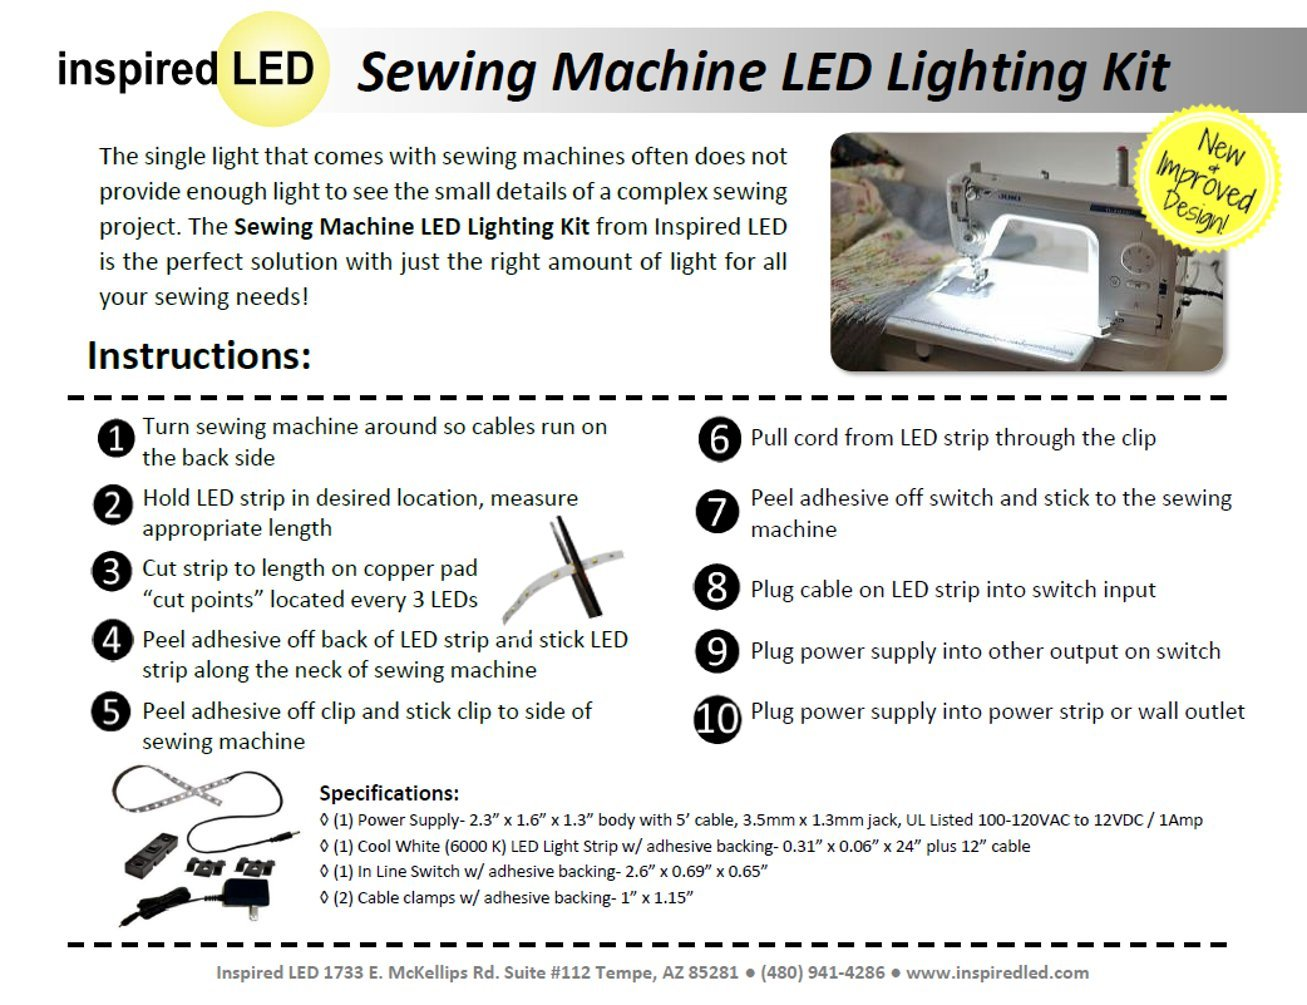 Inspired Led Sewing Machine Lighting Deluxe Kit Necchi Supernova Threading Diagram Vintage Includes Expansion For 2 Machines Perfect Long Arm